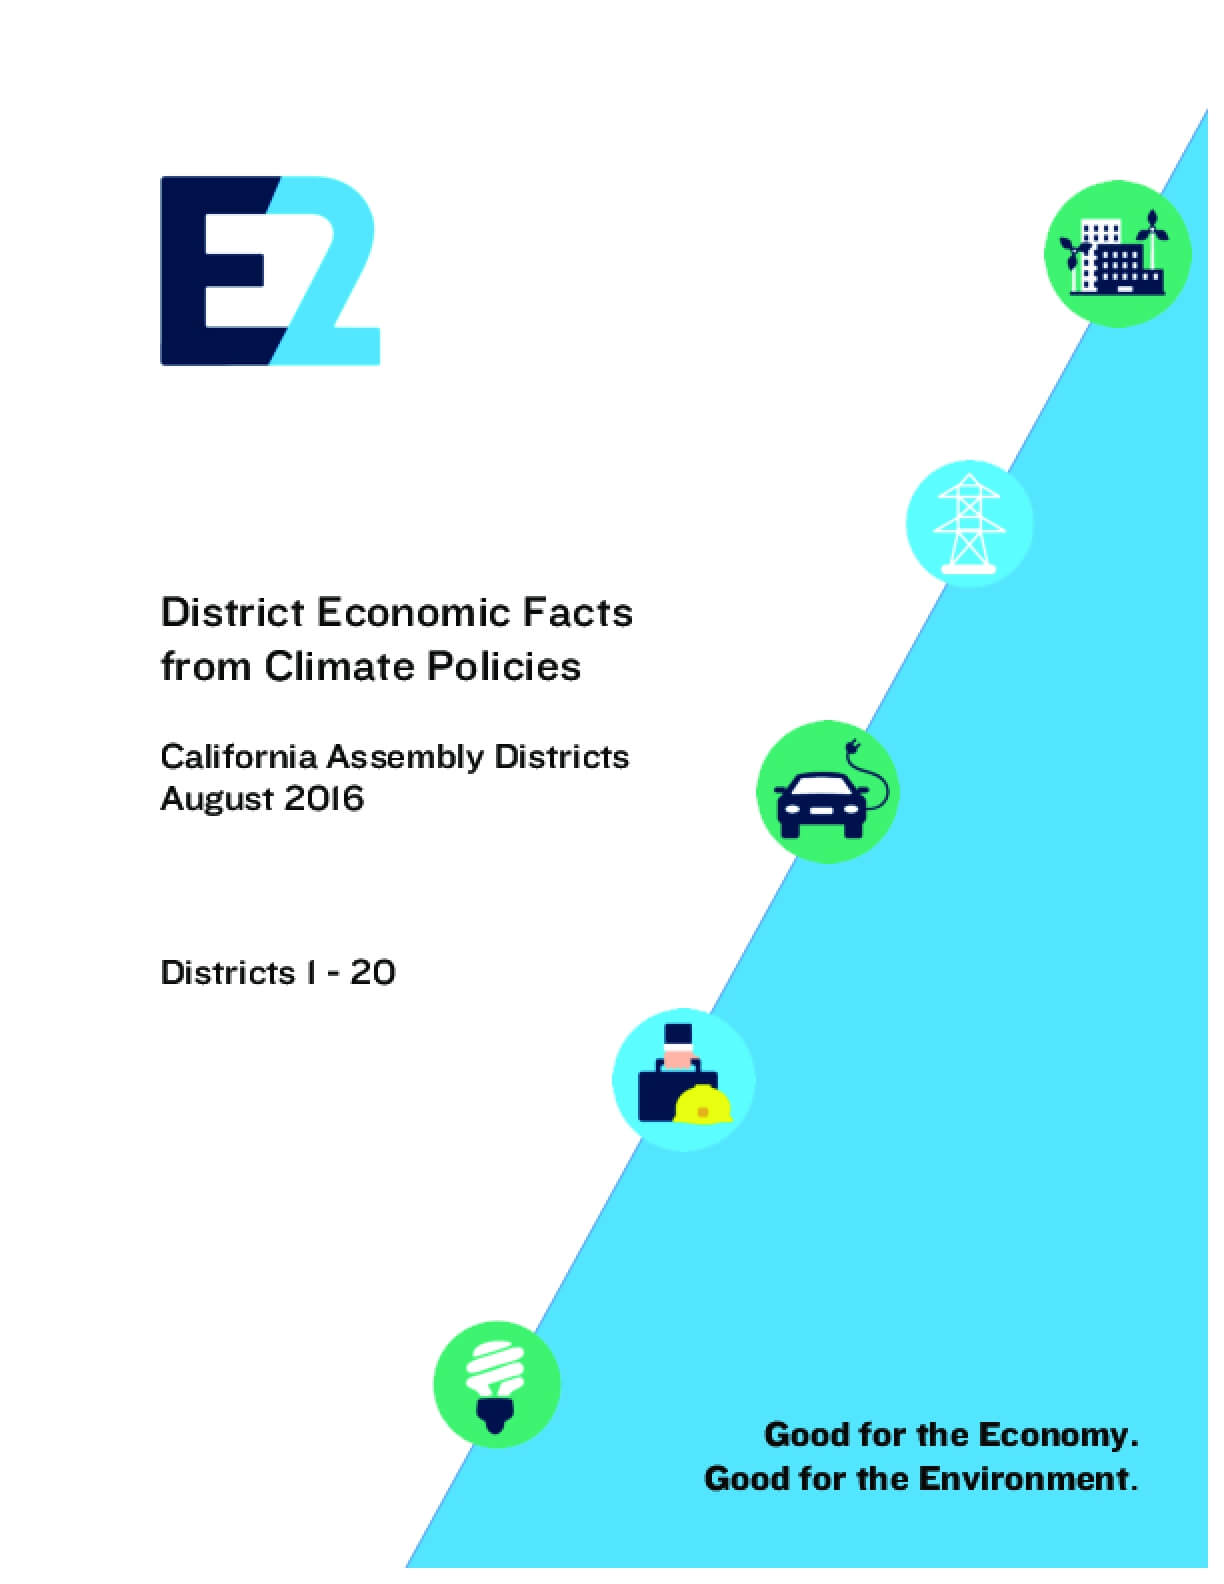 District Economic Facts from Climate Policies: California Assembly Districts 1 - 20